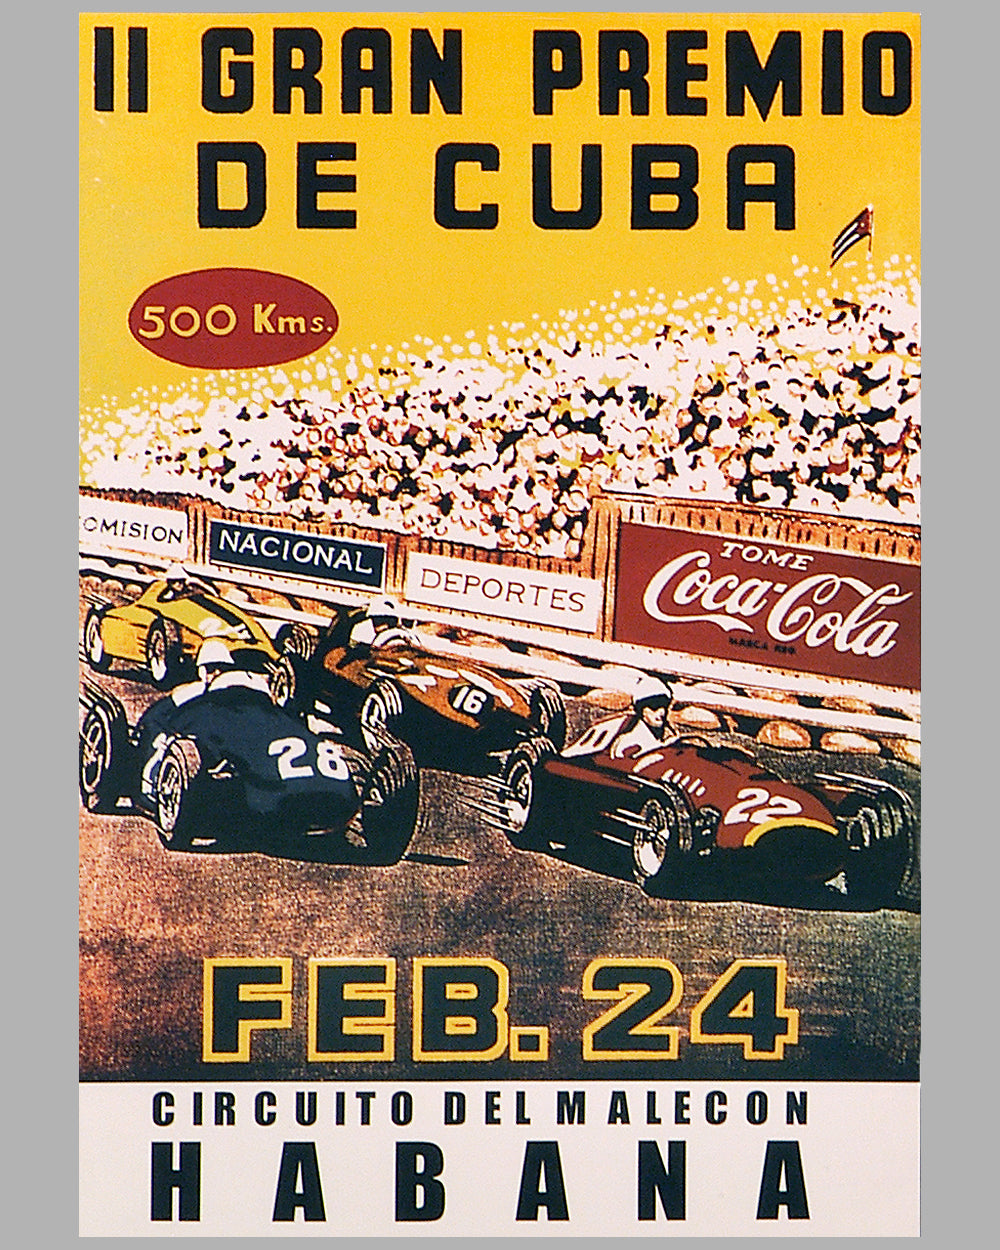 1957 Grand Prix of Cuba event poster